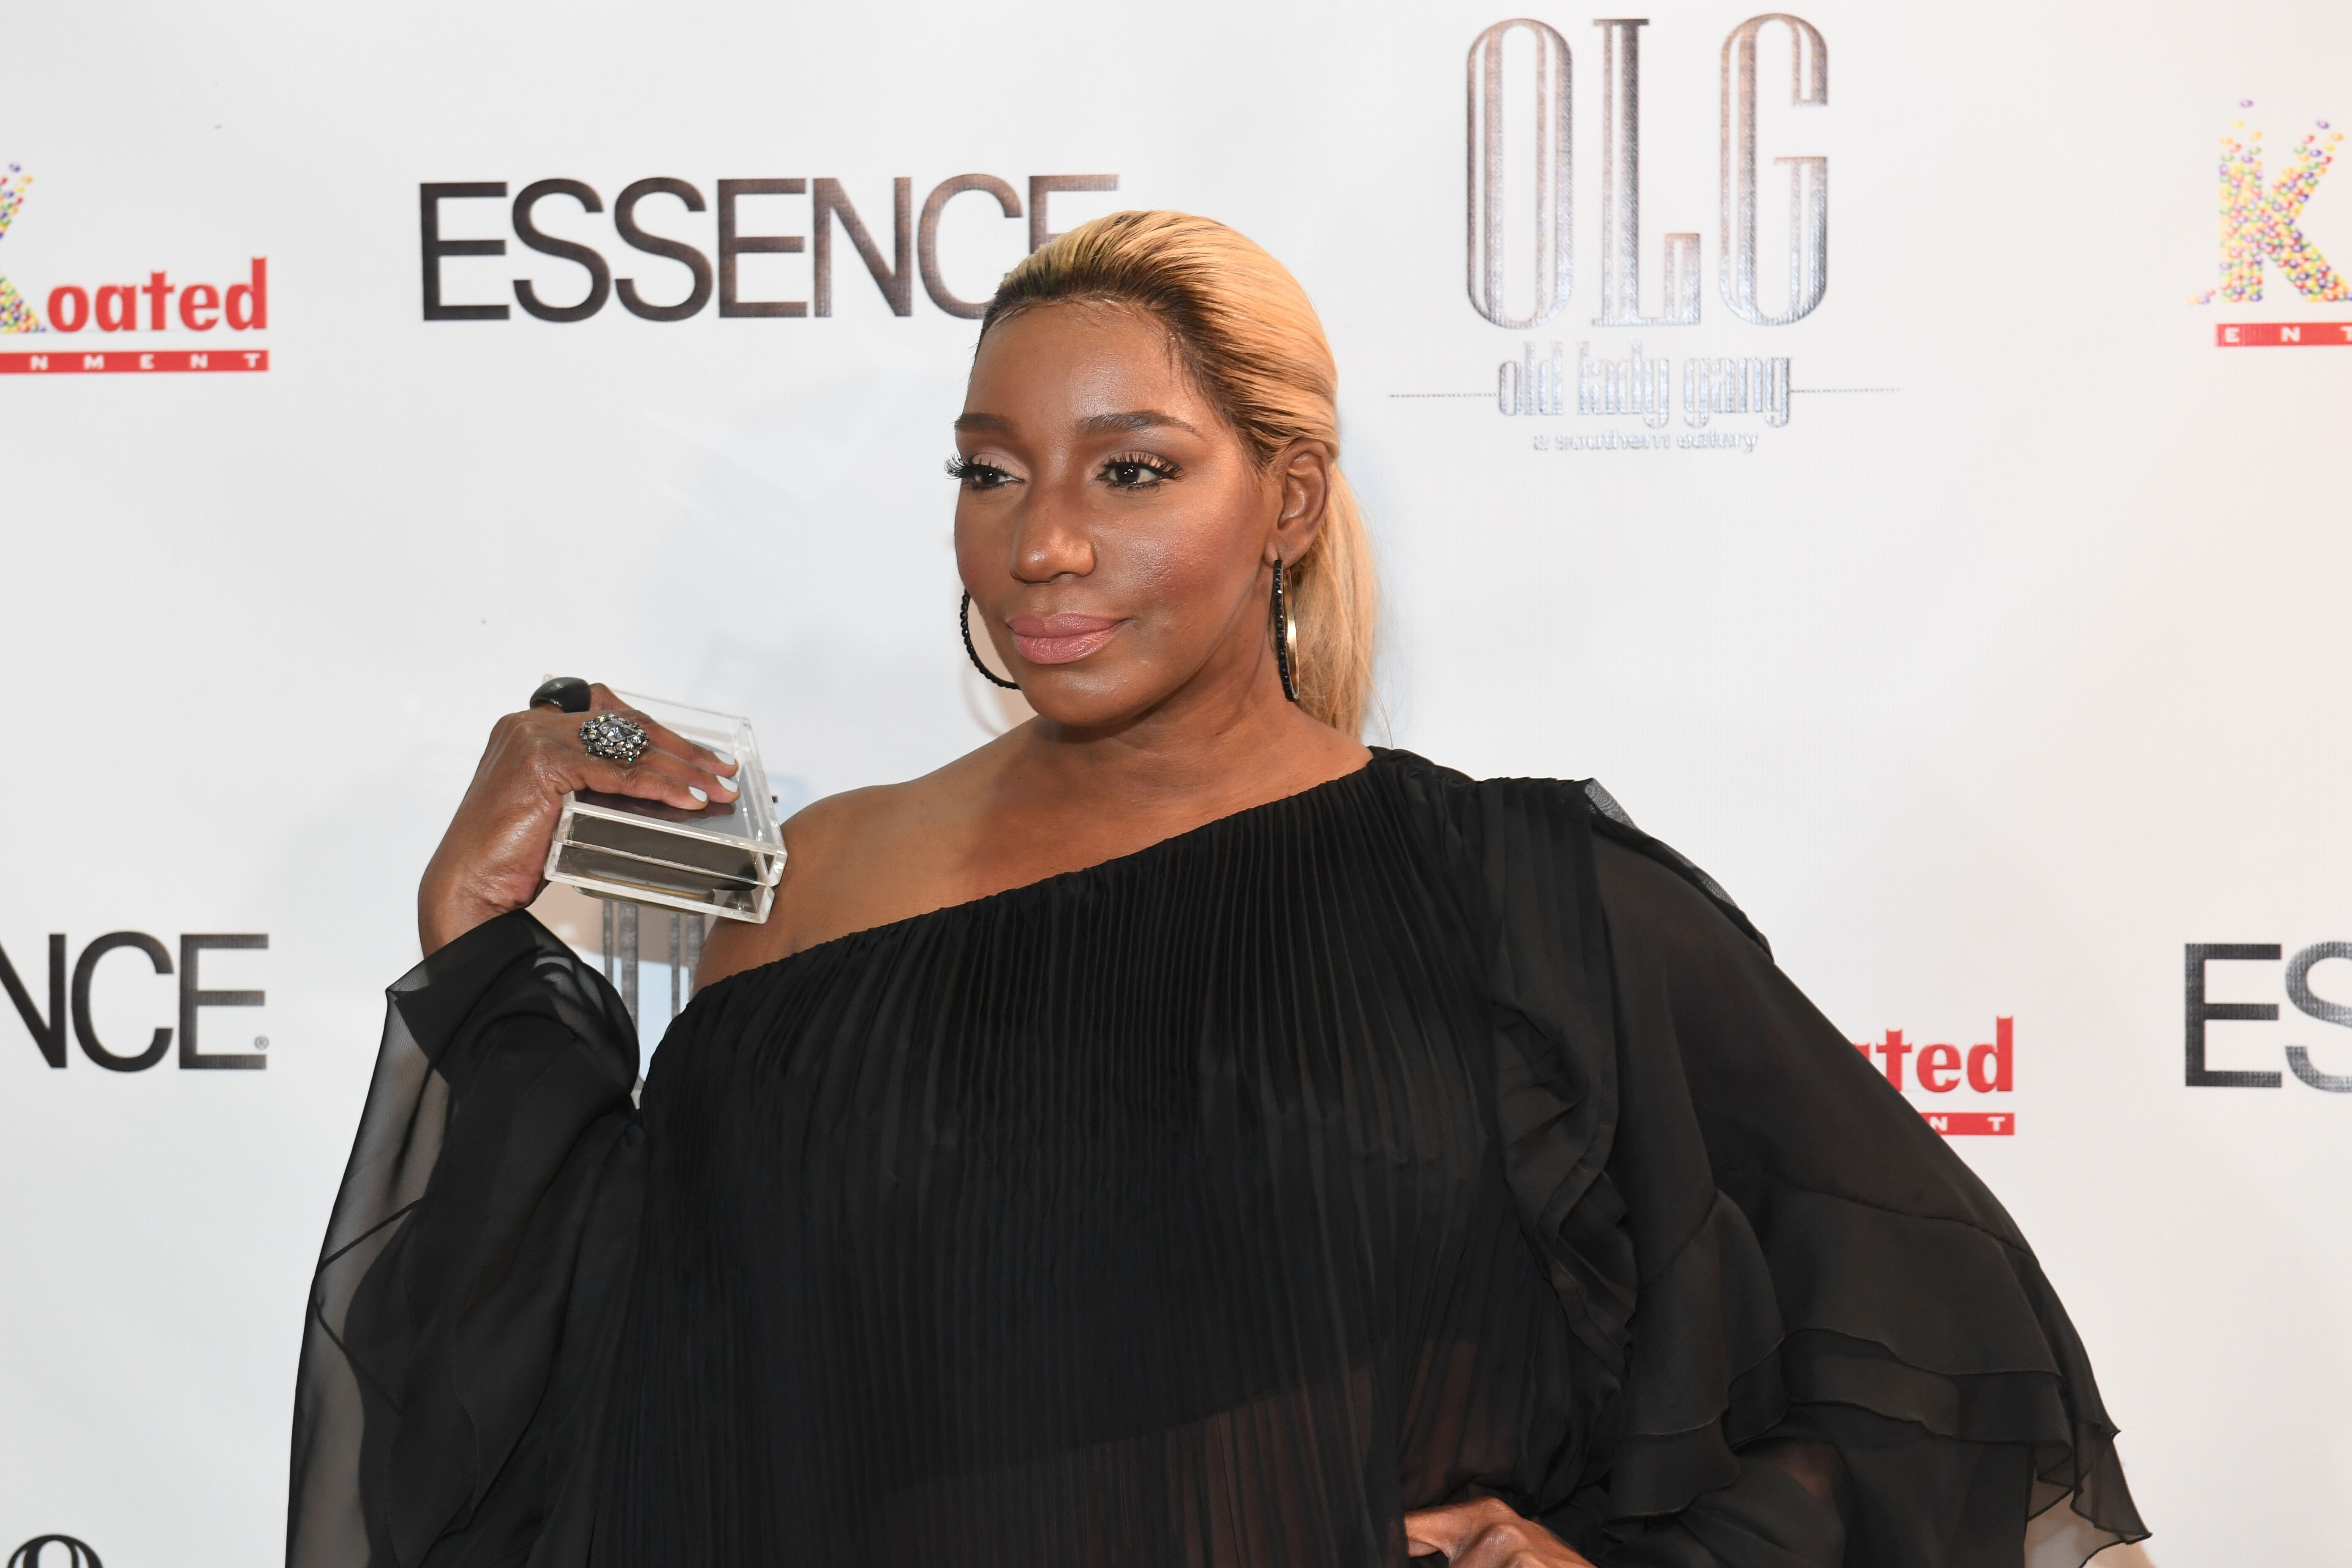 """Real Housewives of Atlanta"" star NeNe Leakes at an Essence event/ Source; Getty Images"